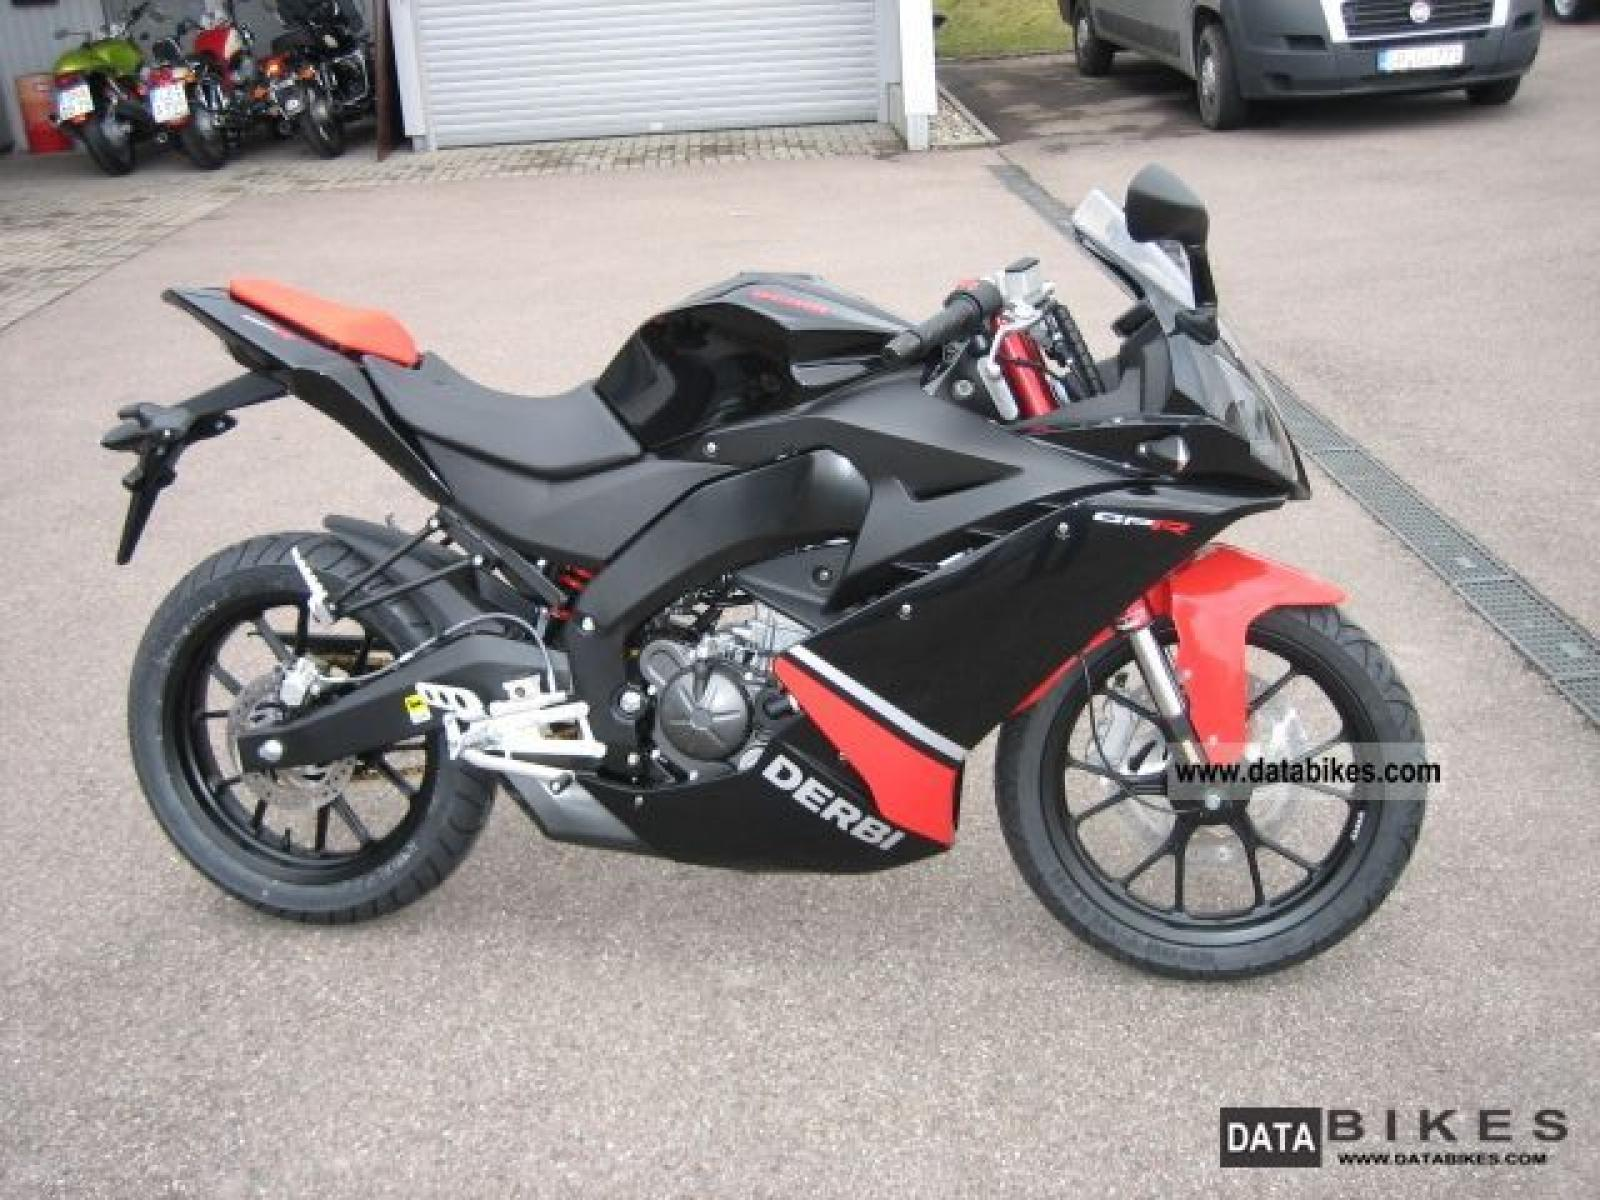 2009 derbi gpr 125 4t 4v moto zombdrive com. Black Bedroom Furniture Sets. Home Design Ideas